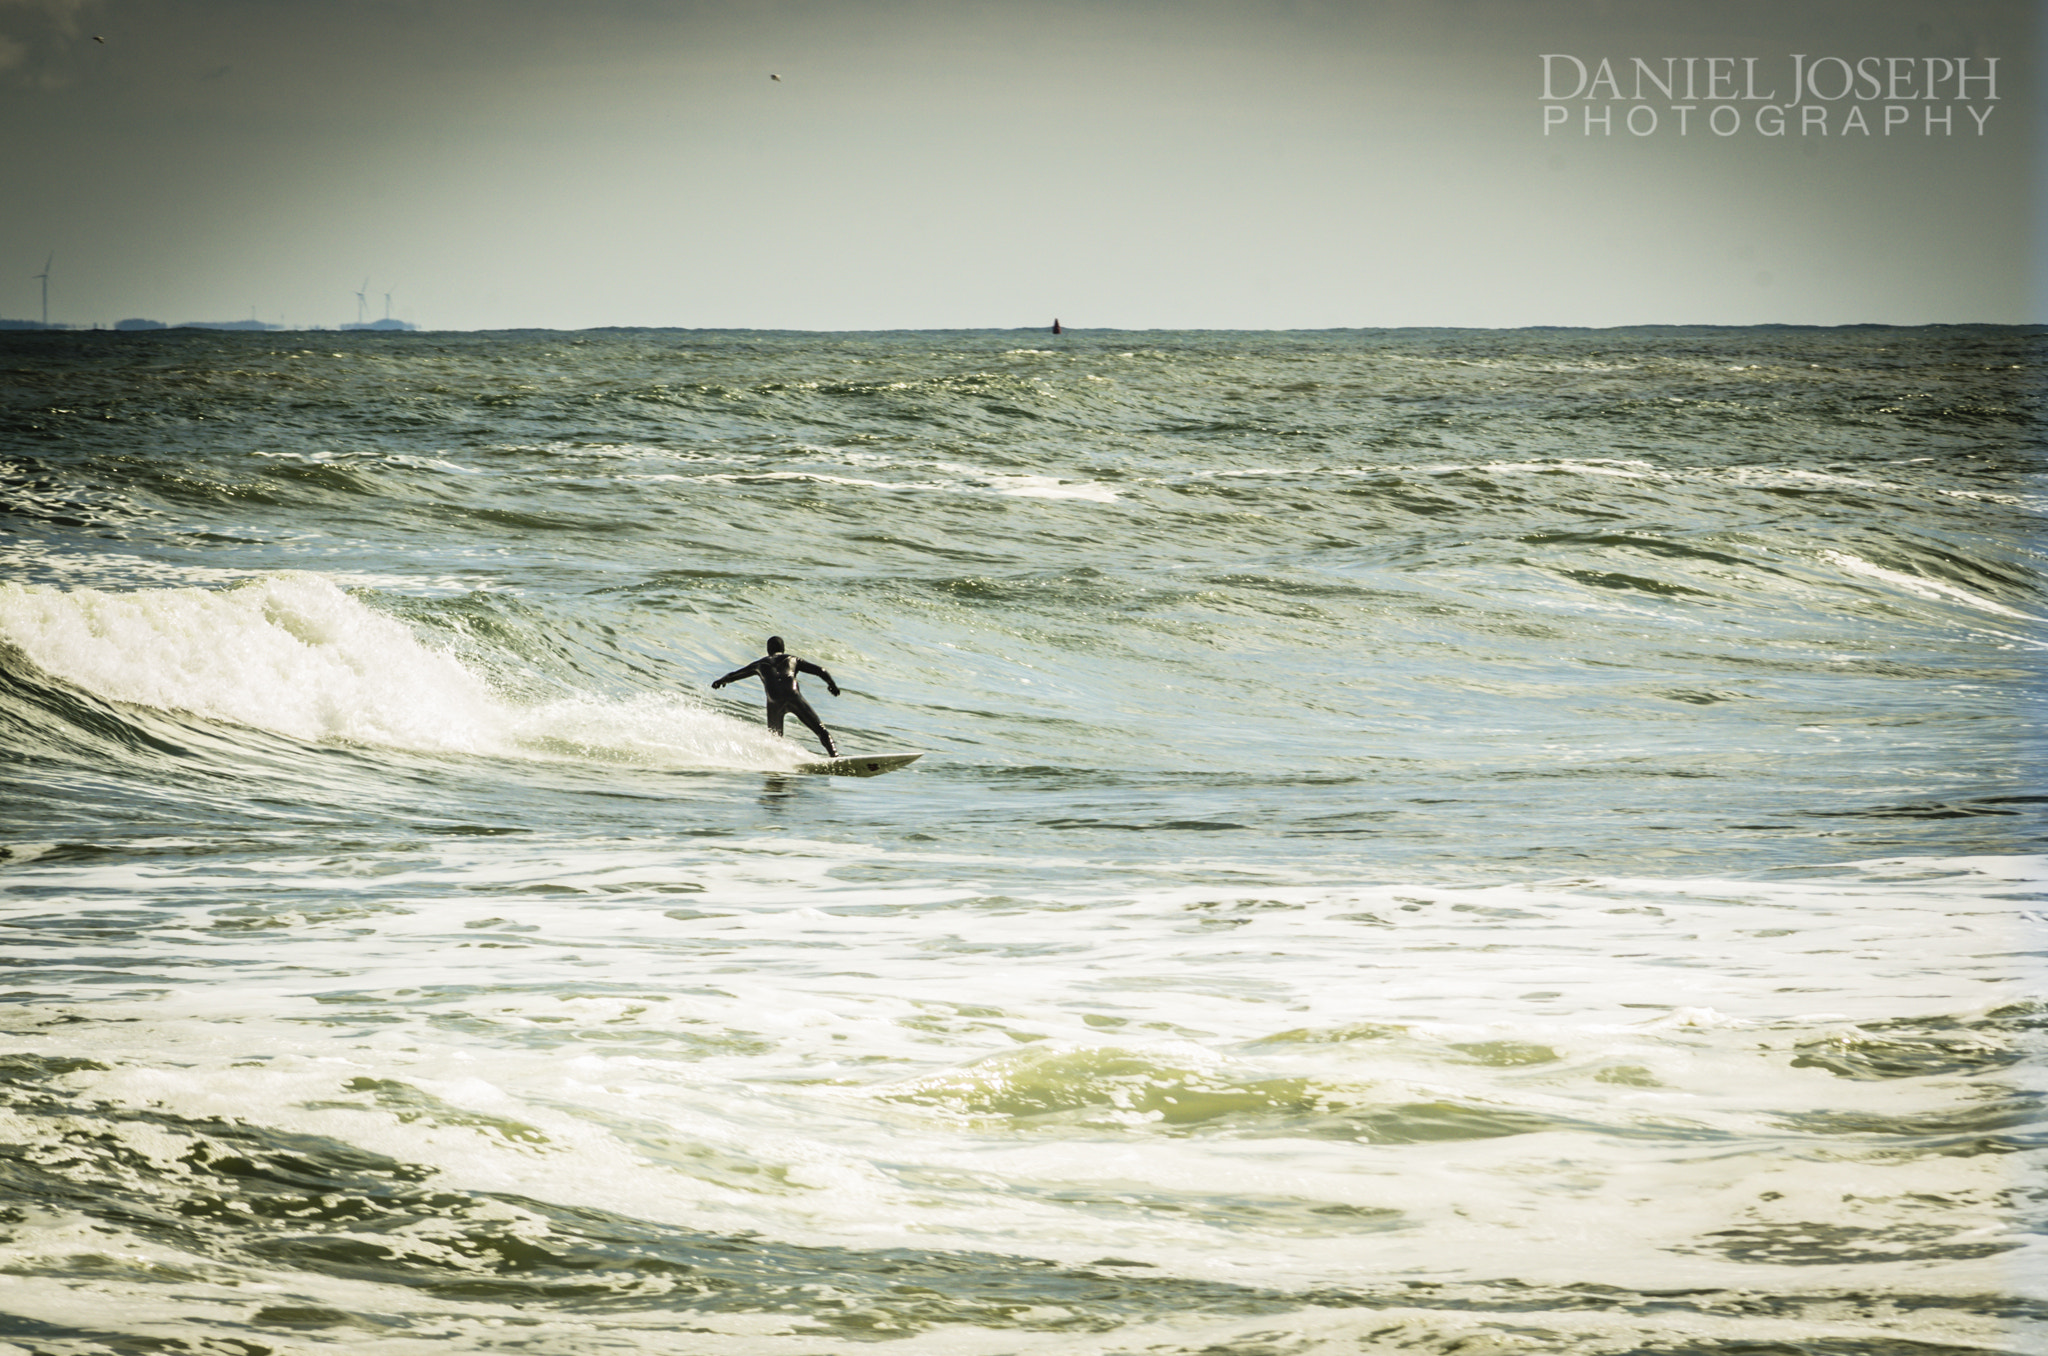 Photograph Catching Waves by Daniel Joseph on 500px